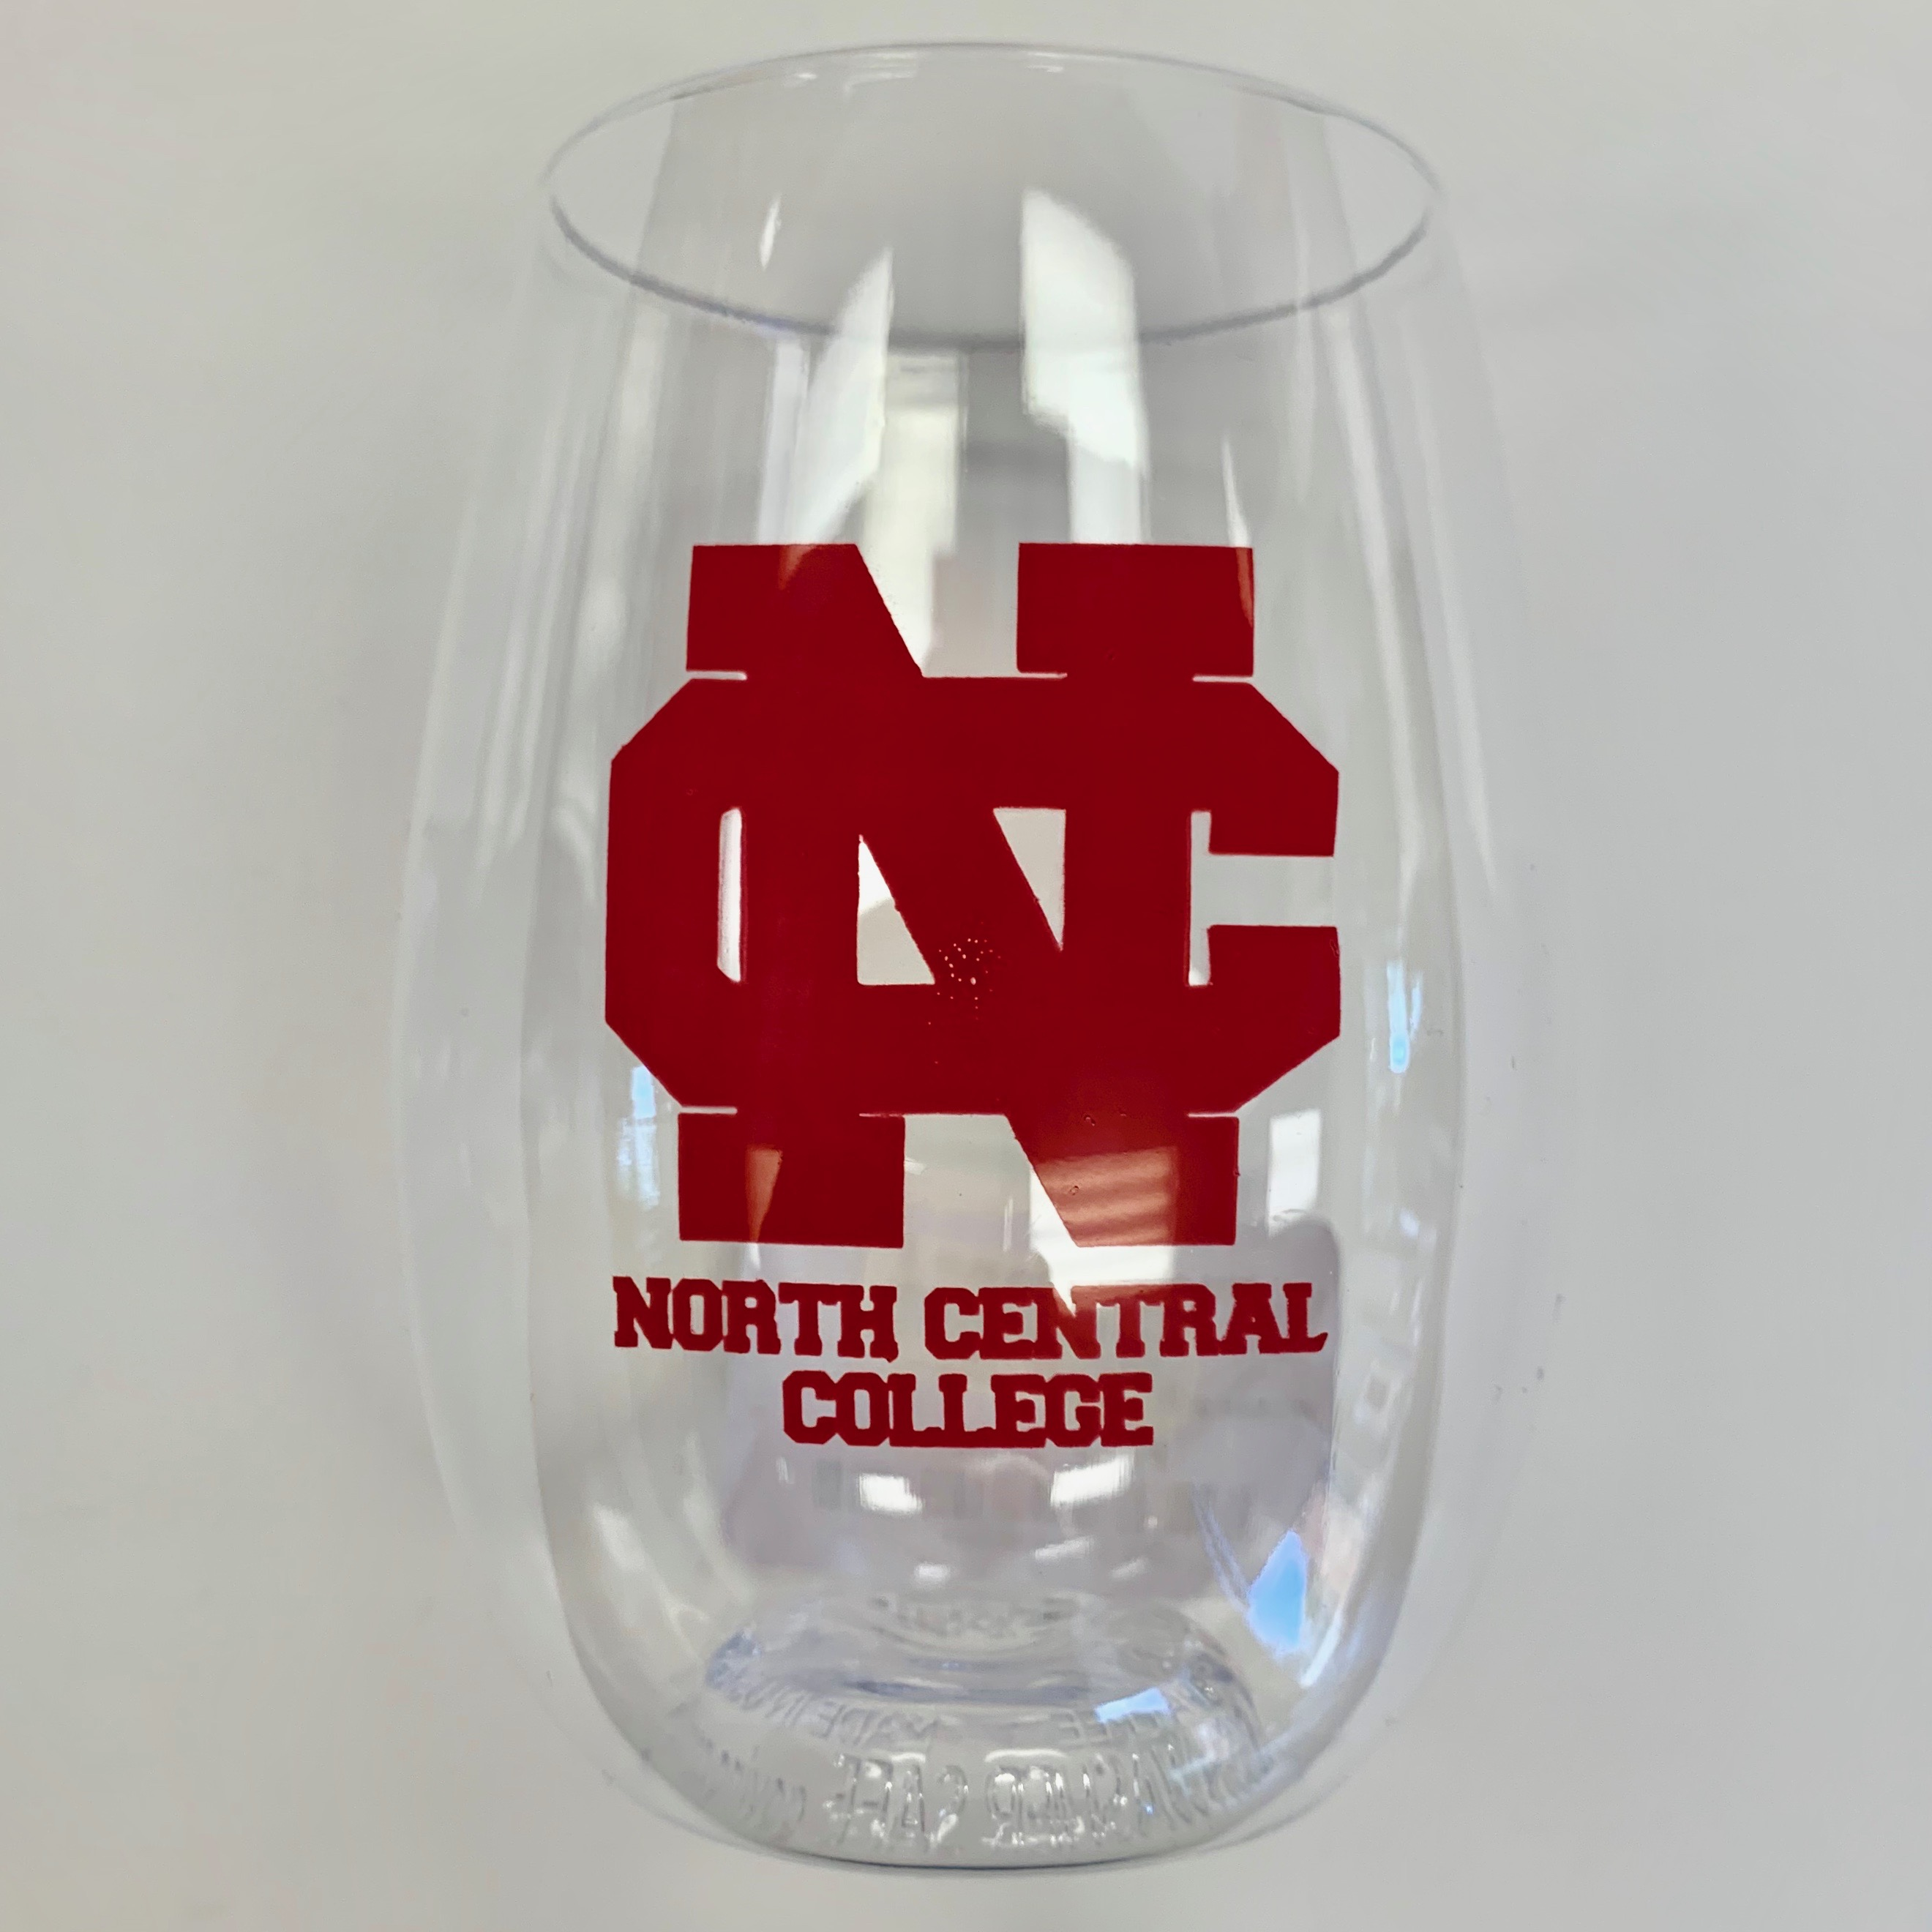 Image for the 2019 Govino Wine Glass by Neil Enterprises product